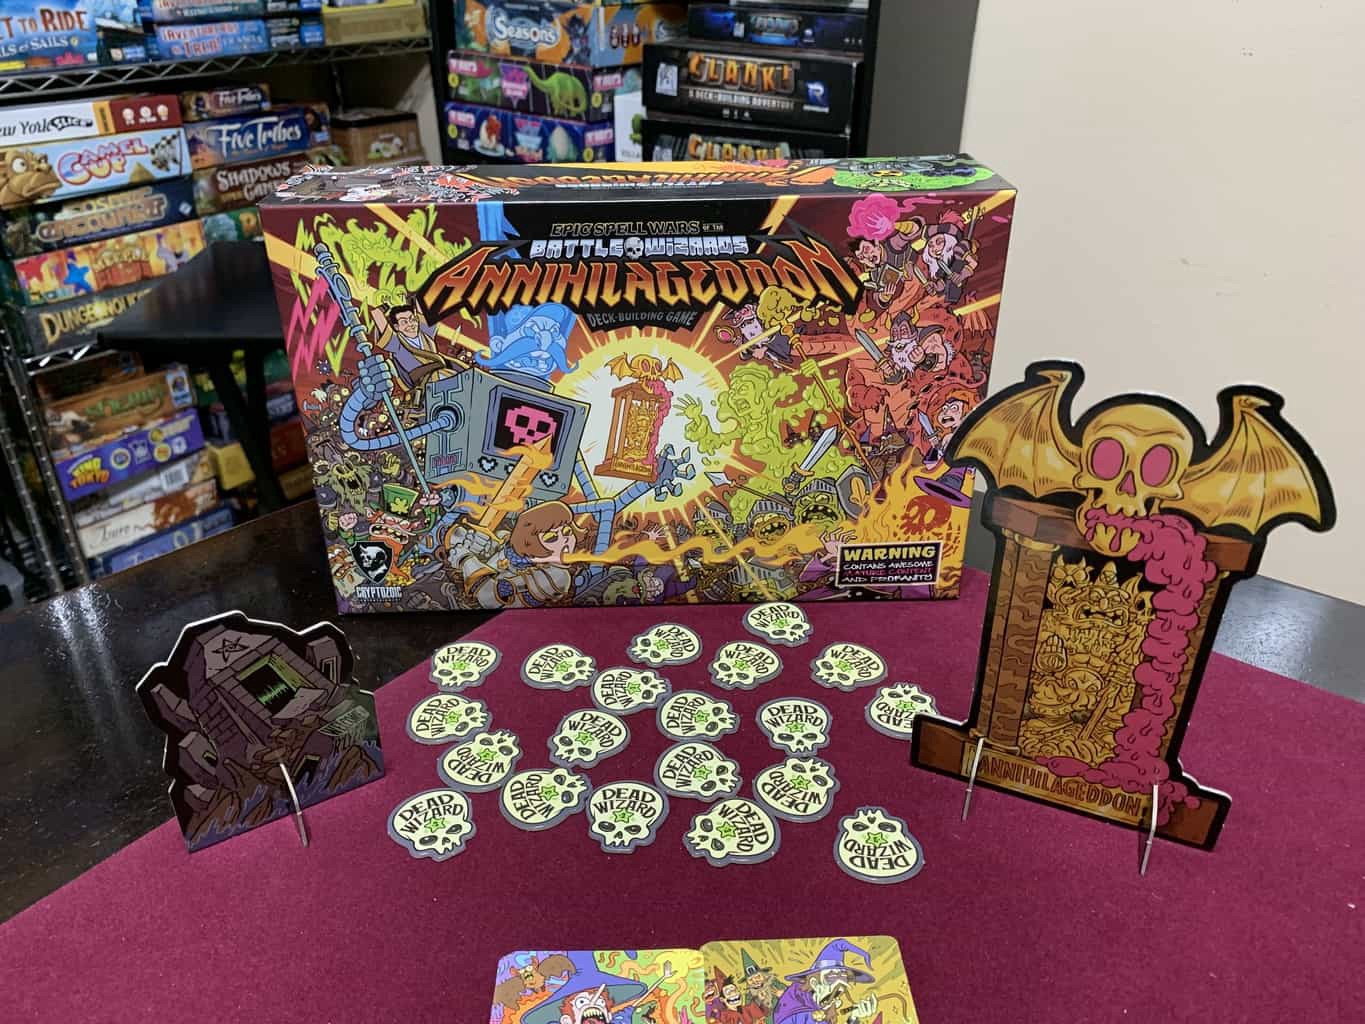 Epic Spell Wars of the Battle Wizards: ANNIHILAGEDDON Deck-Building Game - Cryptozoic Entertainment - Review 2